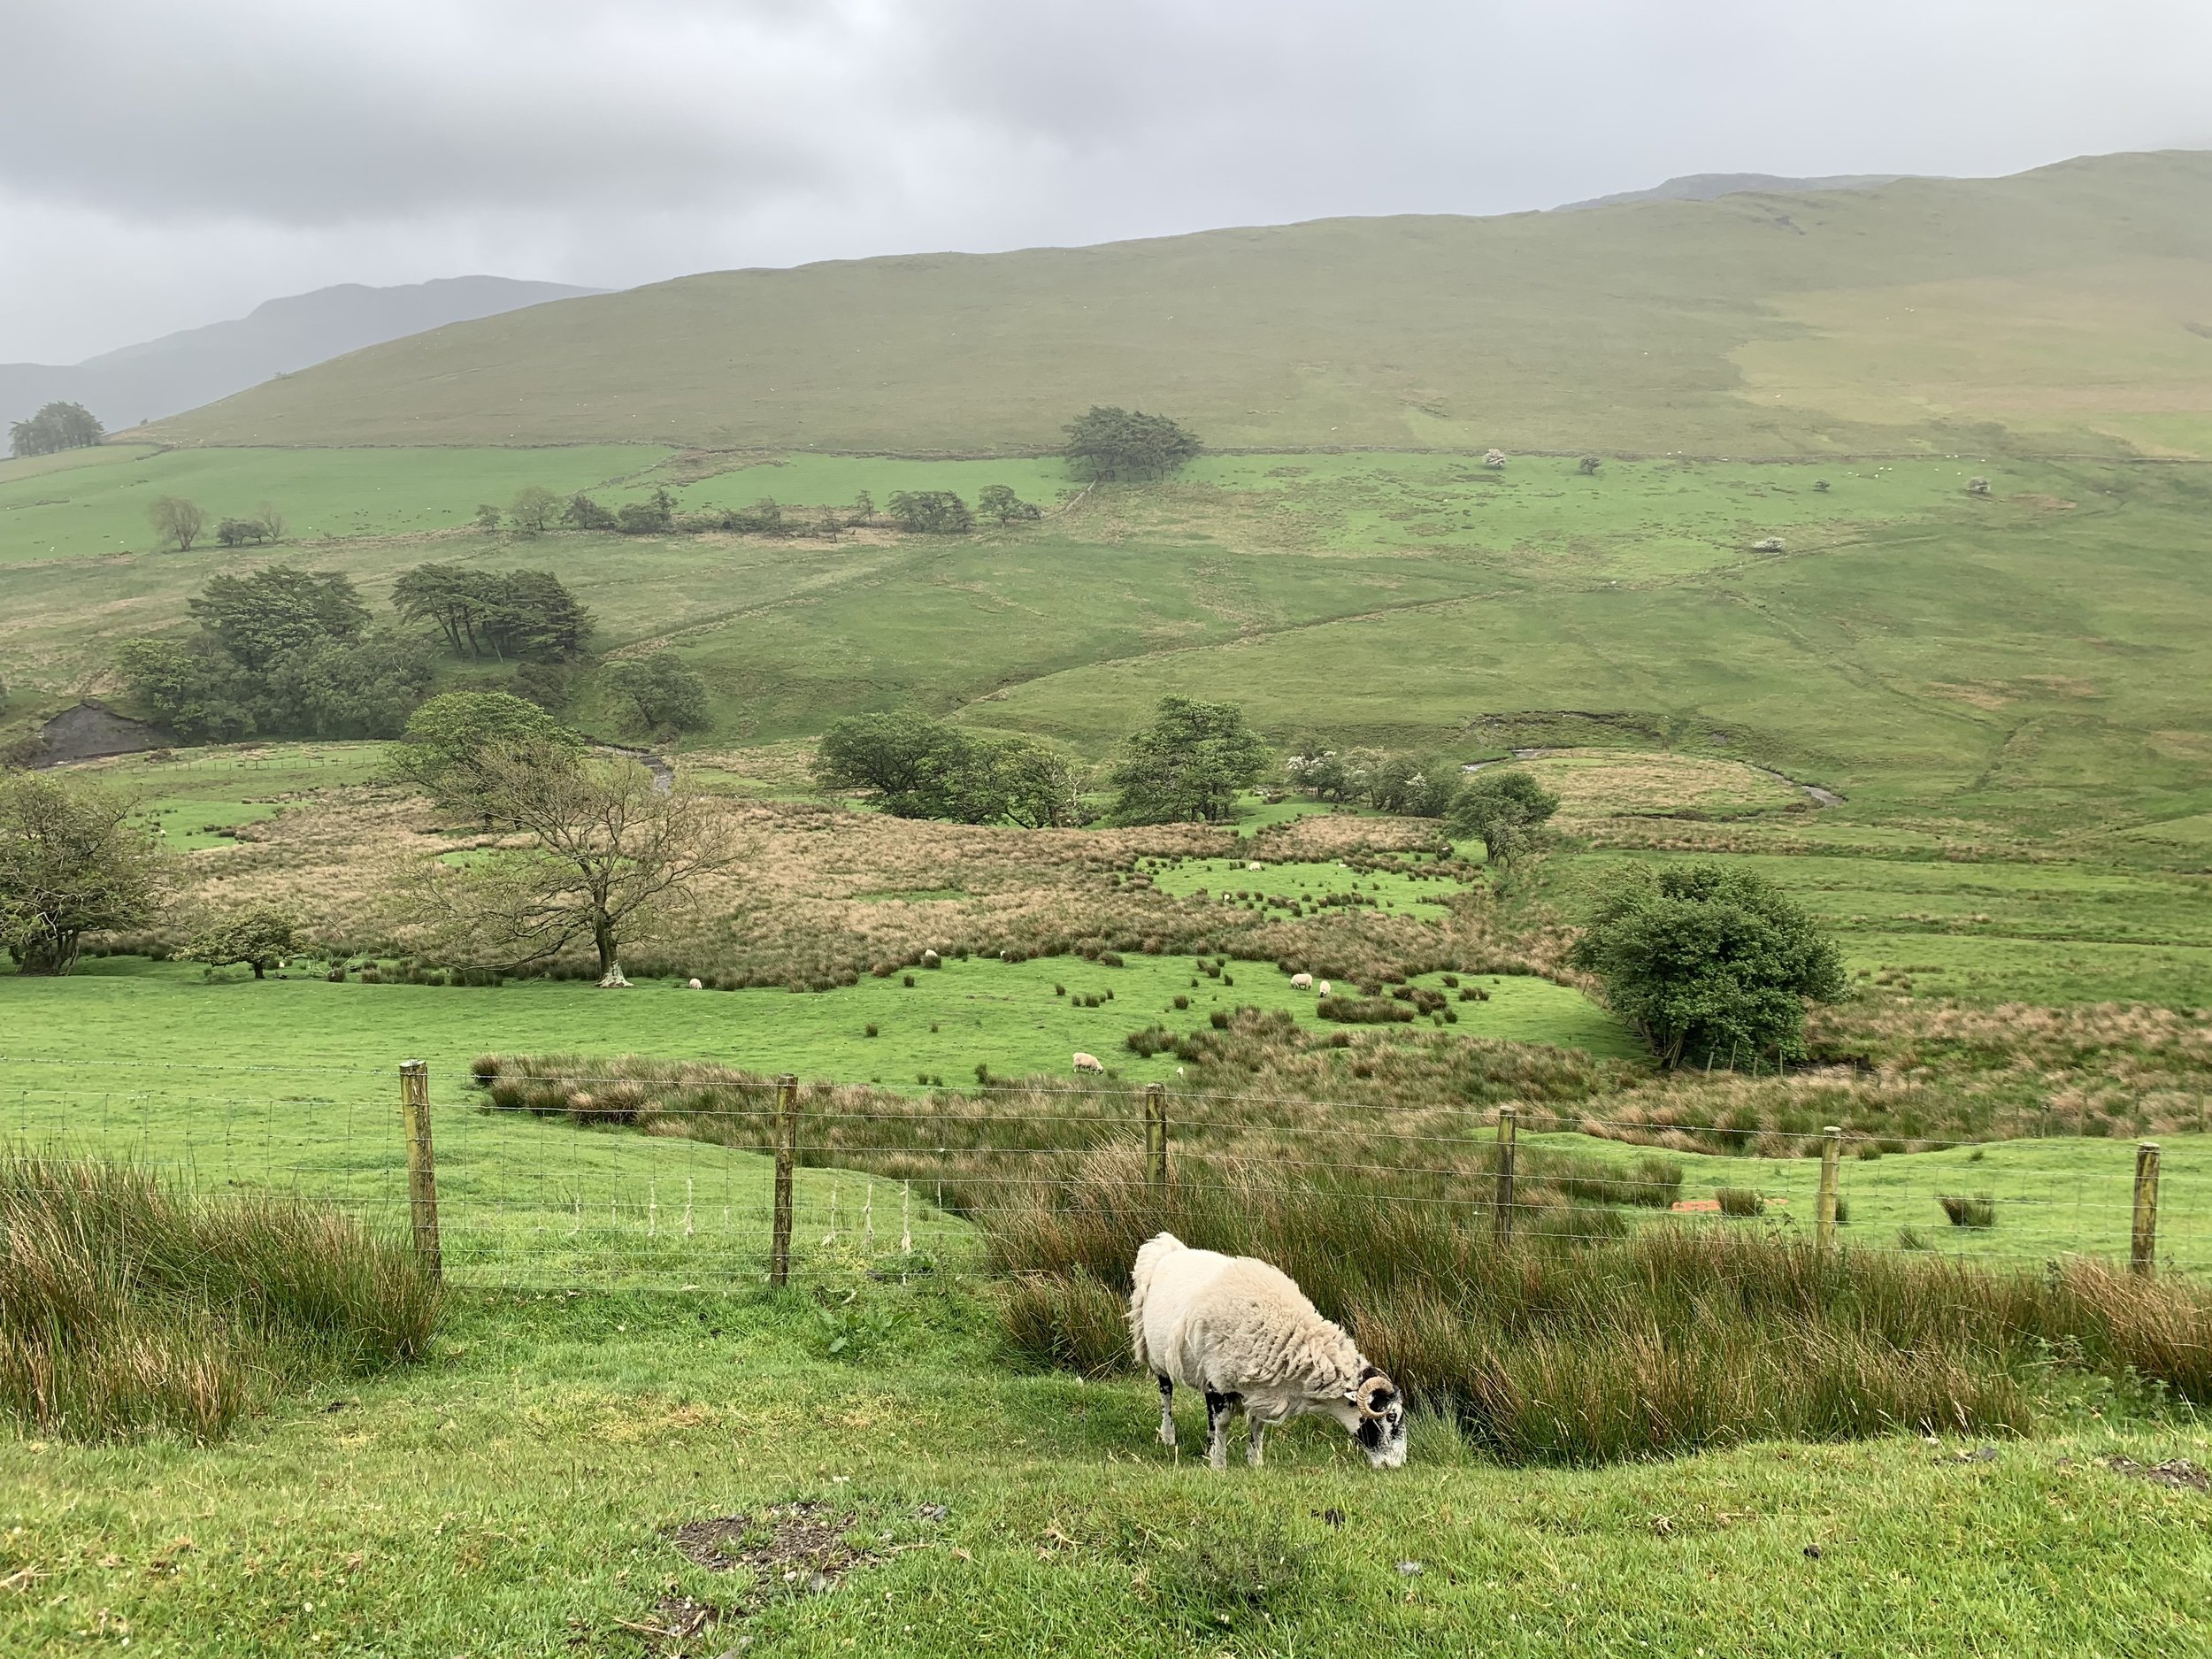 Oh, you know, just some sheep grazing in the field. Driving through the Lake District enroute to Scotland.